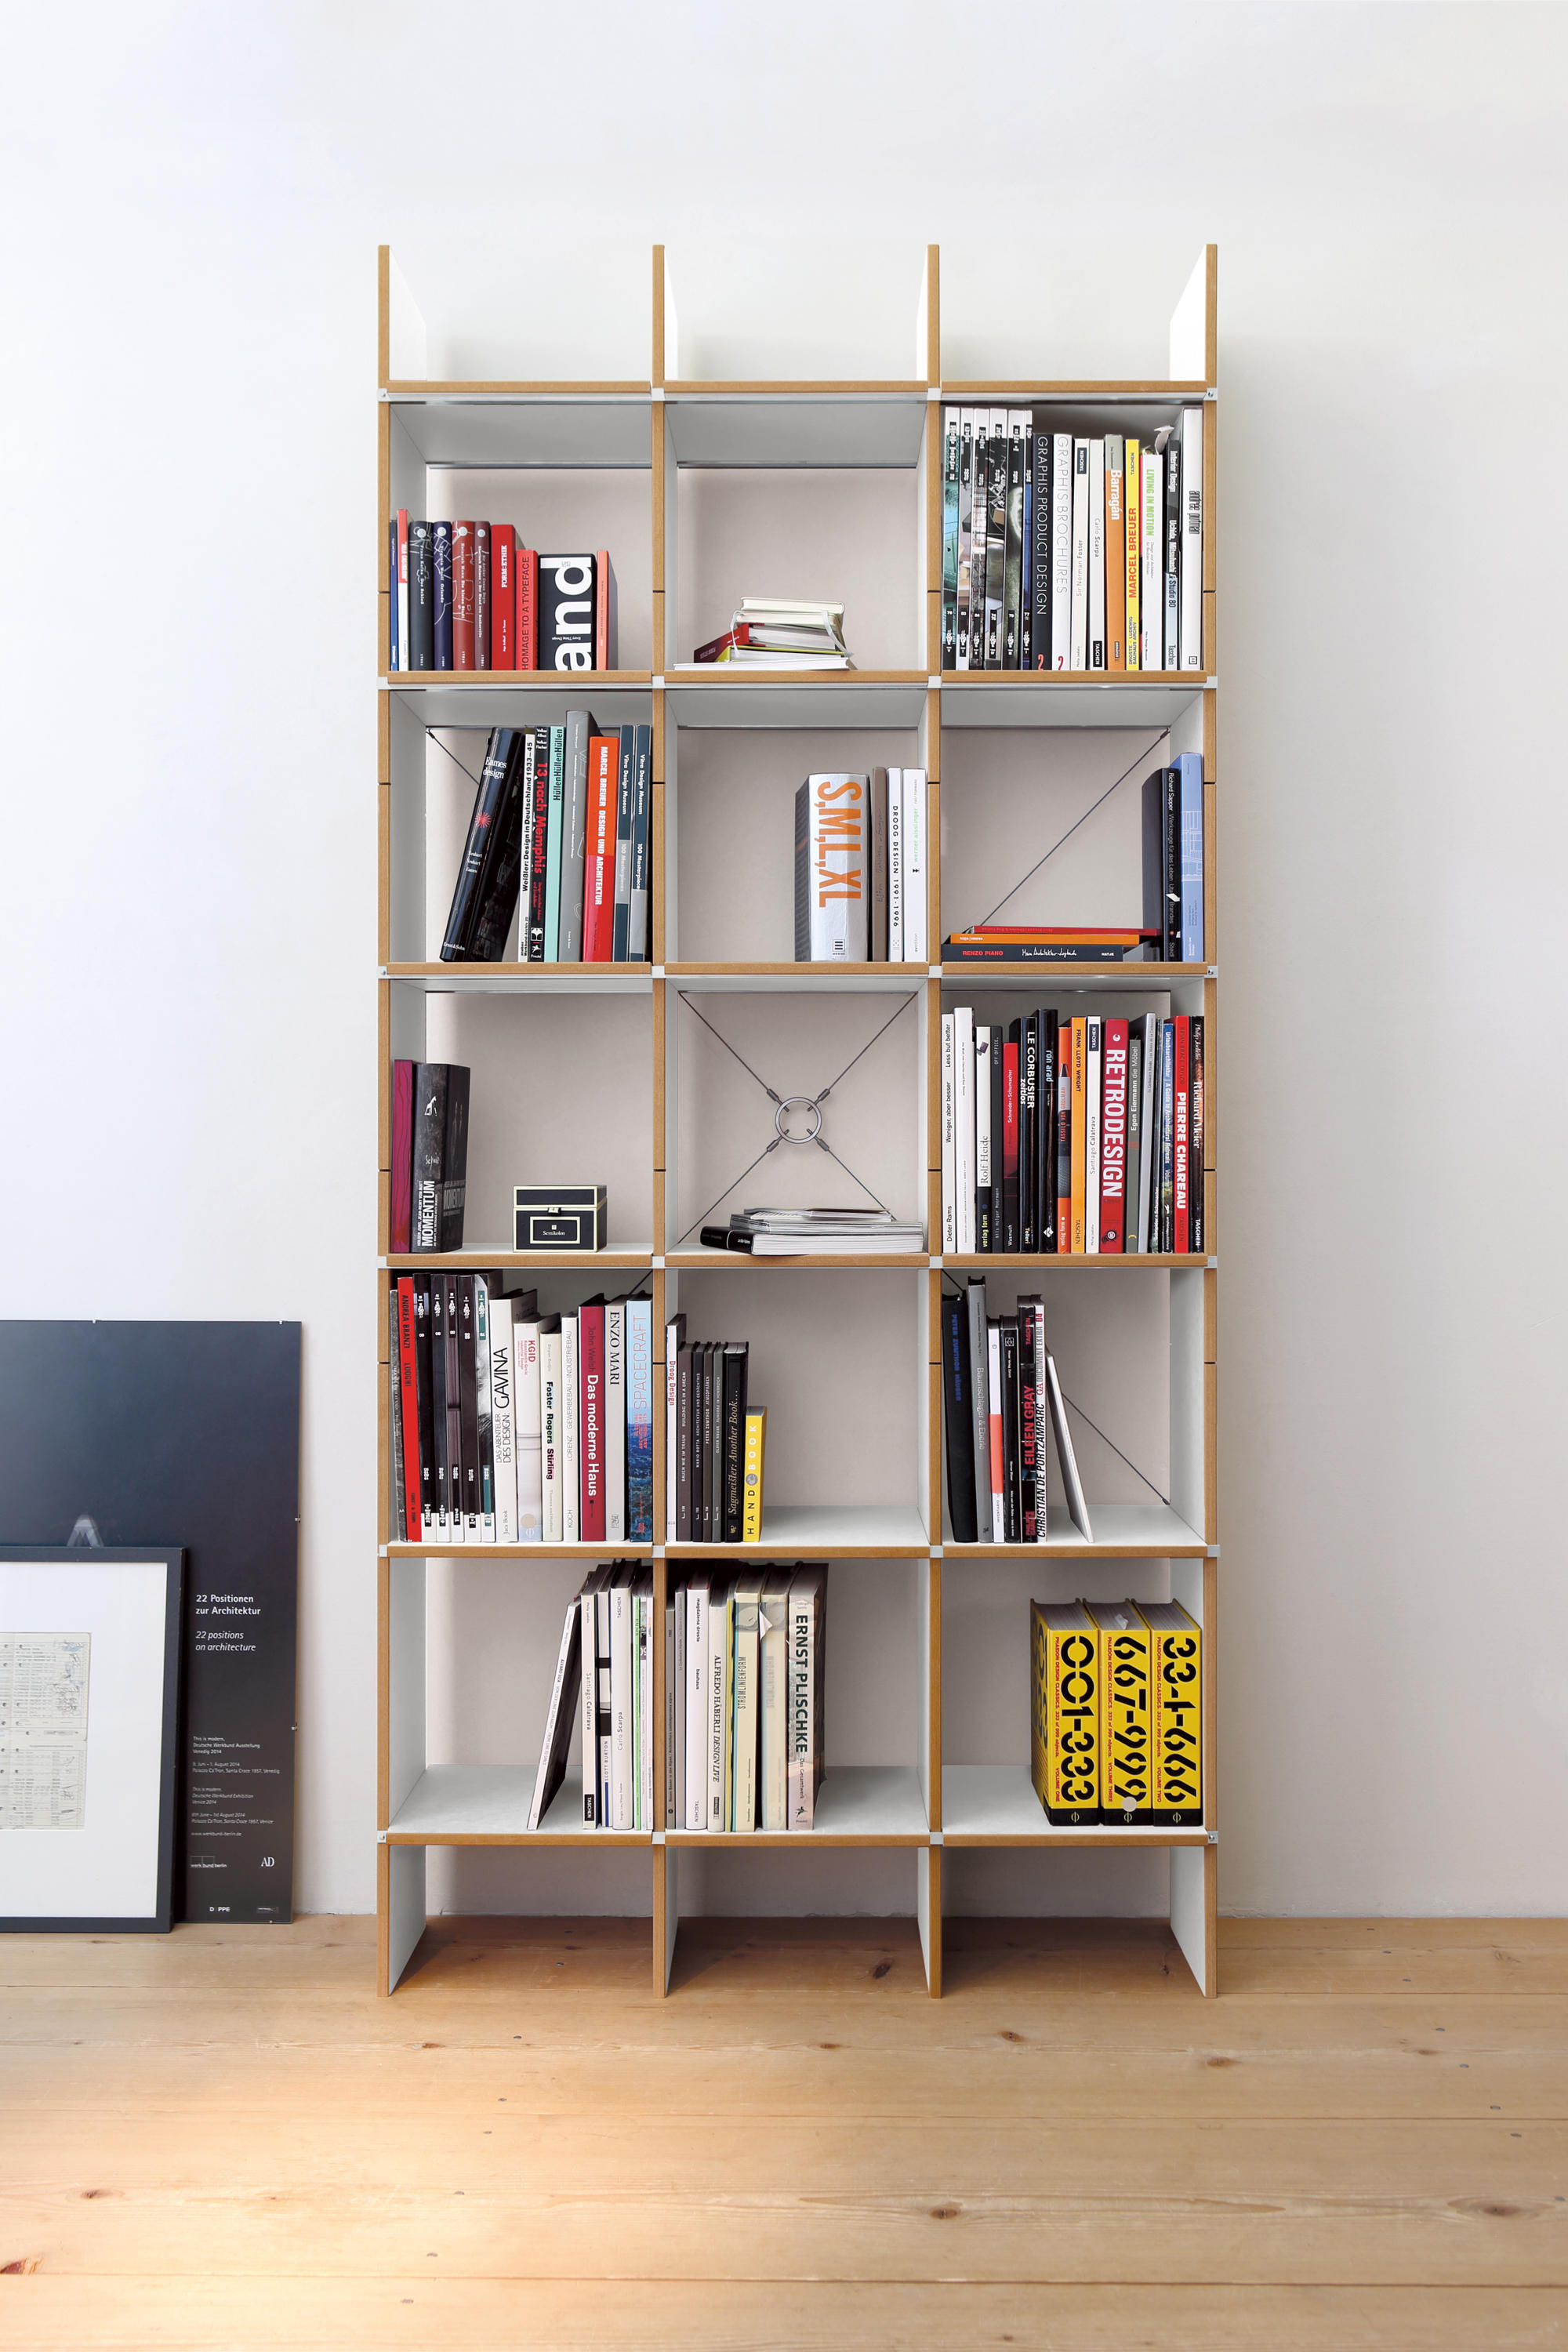 Fnp office shelving systems from moormann architonic for Sideboard regal